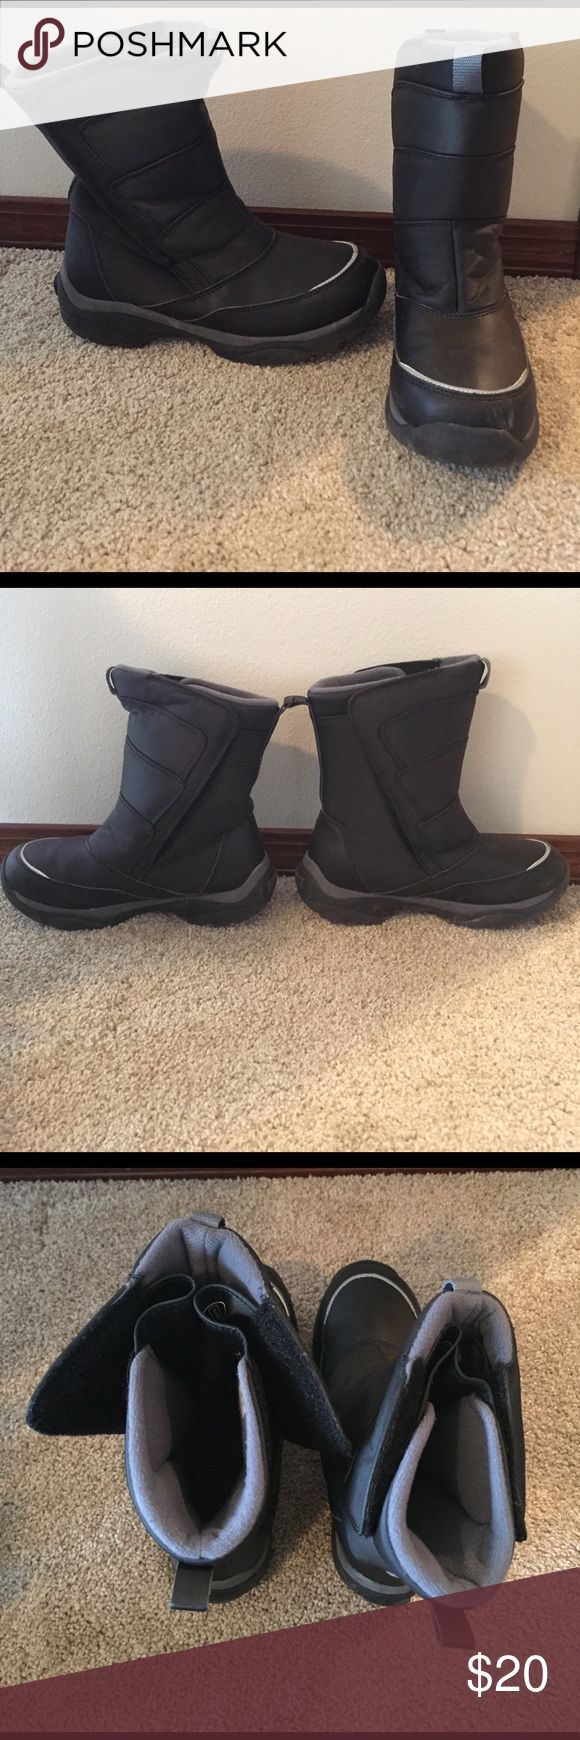 ❄️END OF SEASON SALE ❄️ Lands End Kids Snow Boots Lands End kids snow boots in excellent used condition. Features Velcro closures on each side, reflective tape, an interior name label, and solid tread. Lands' End Shoes Rain & Snow Boots